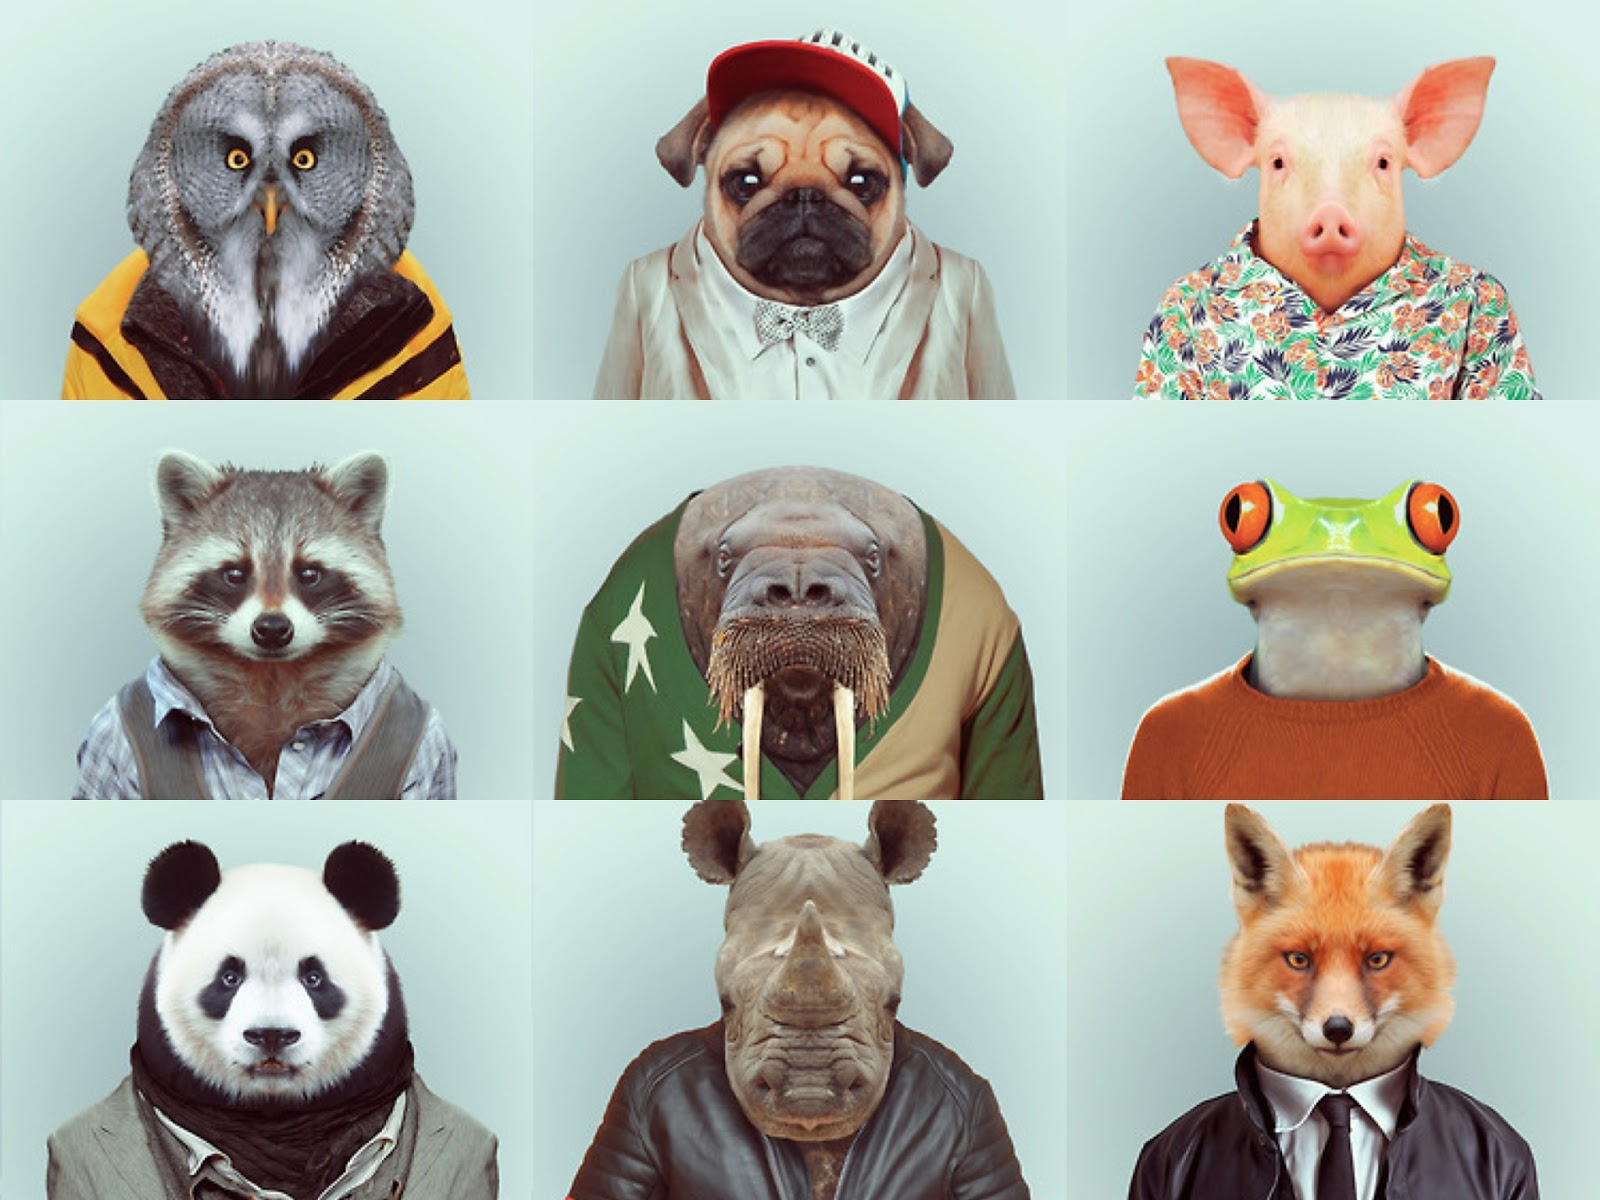 Zoo Portraits by Yago Partal & an update!